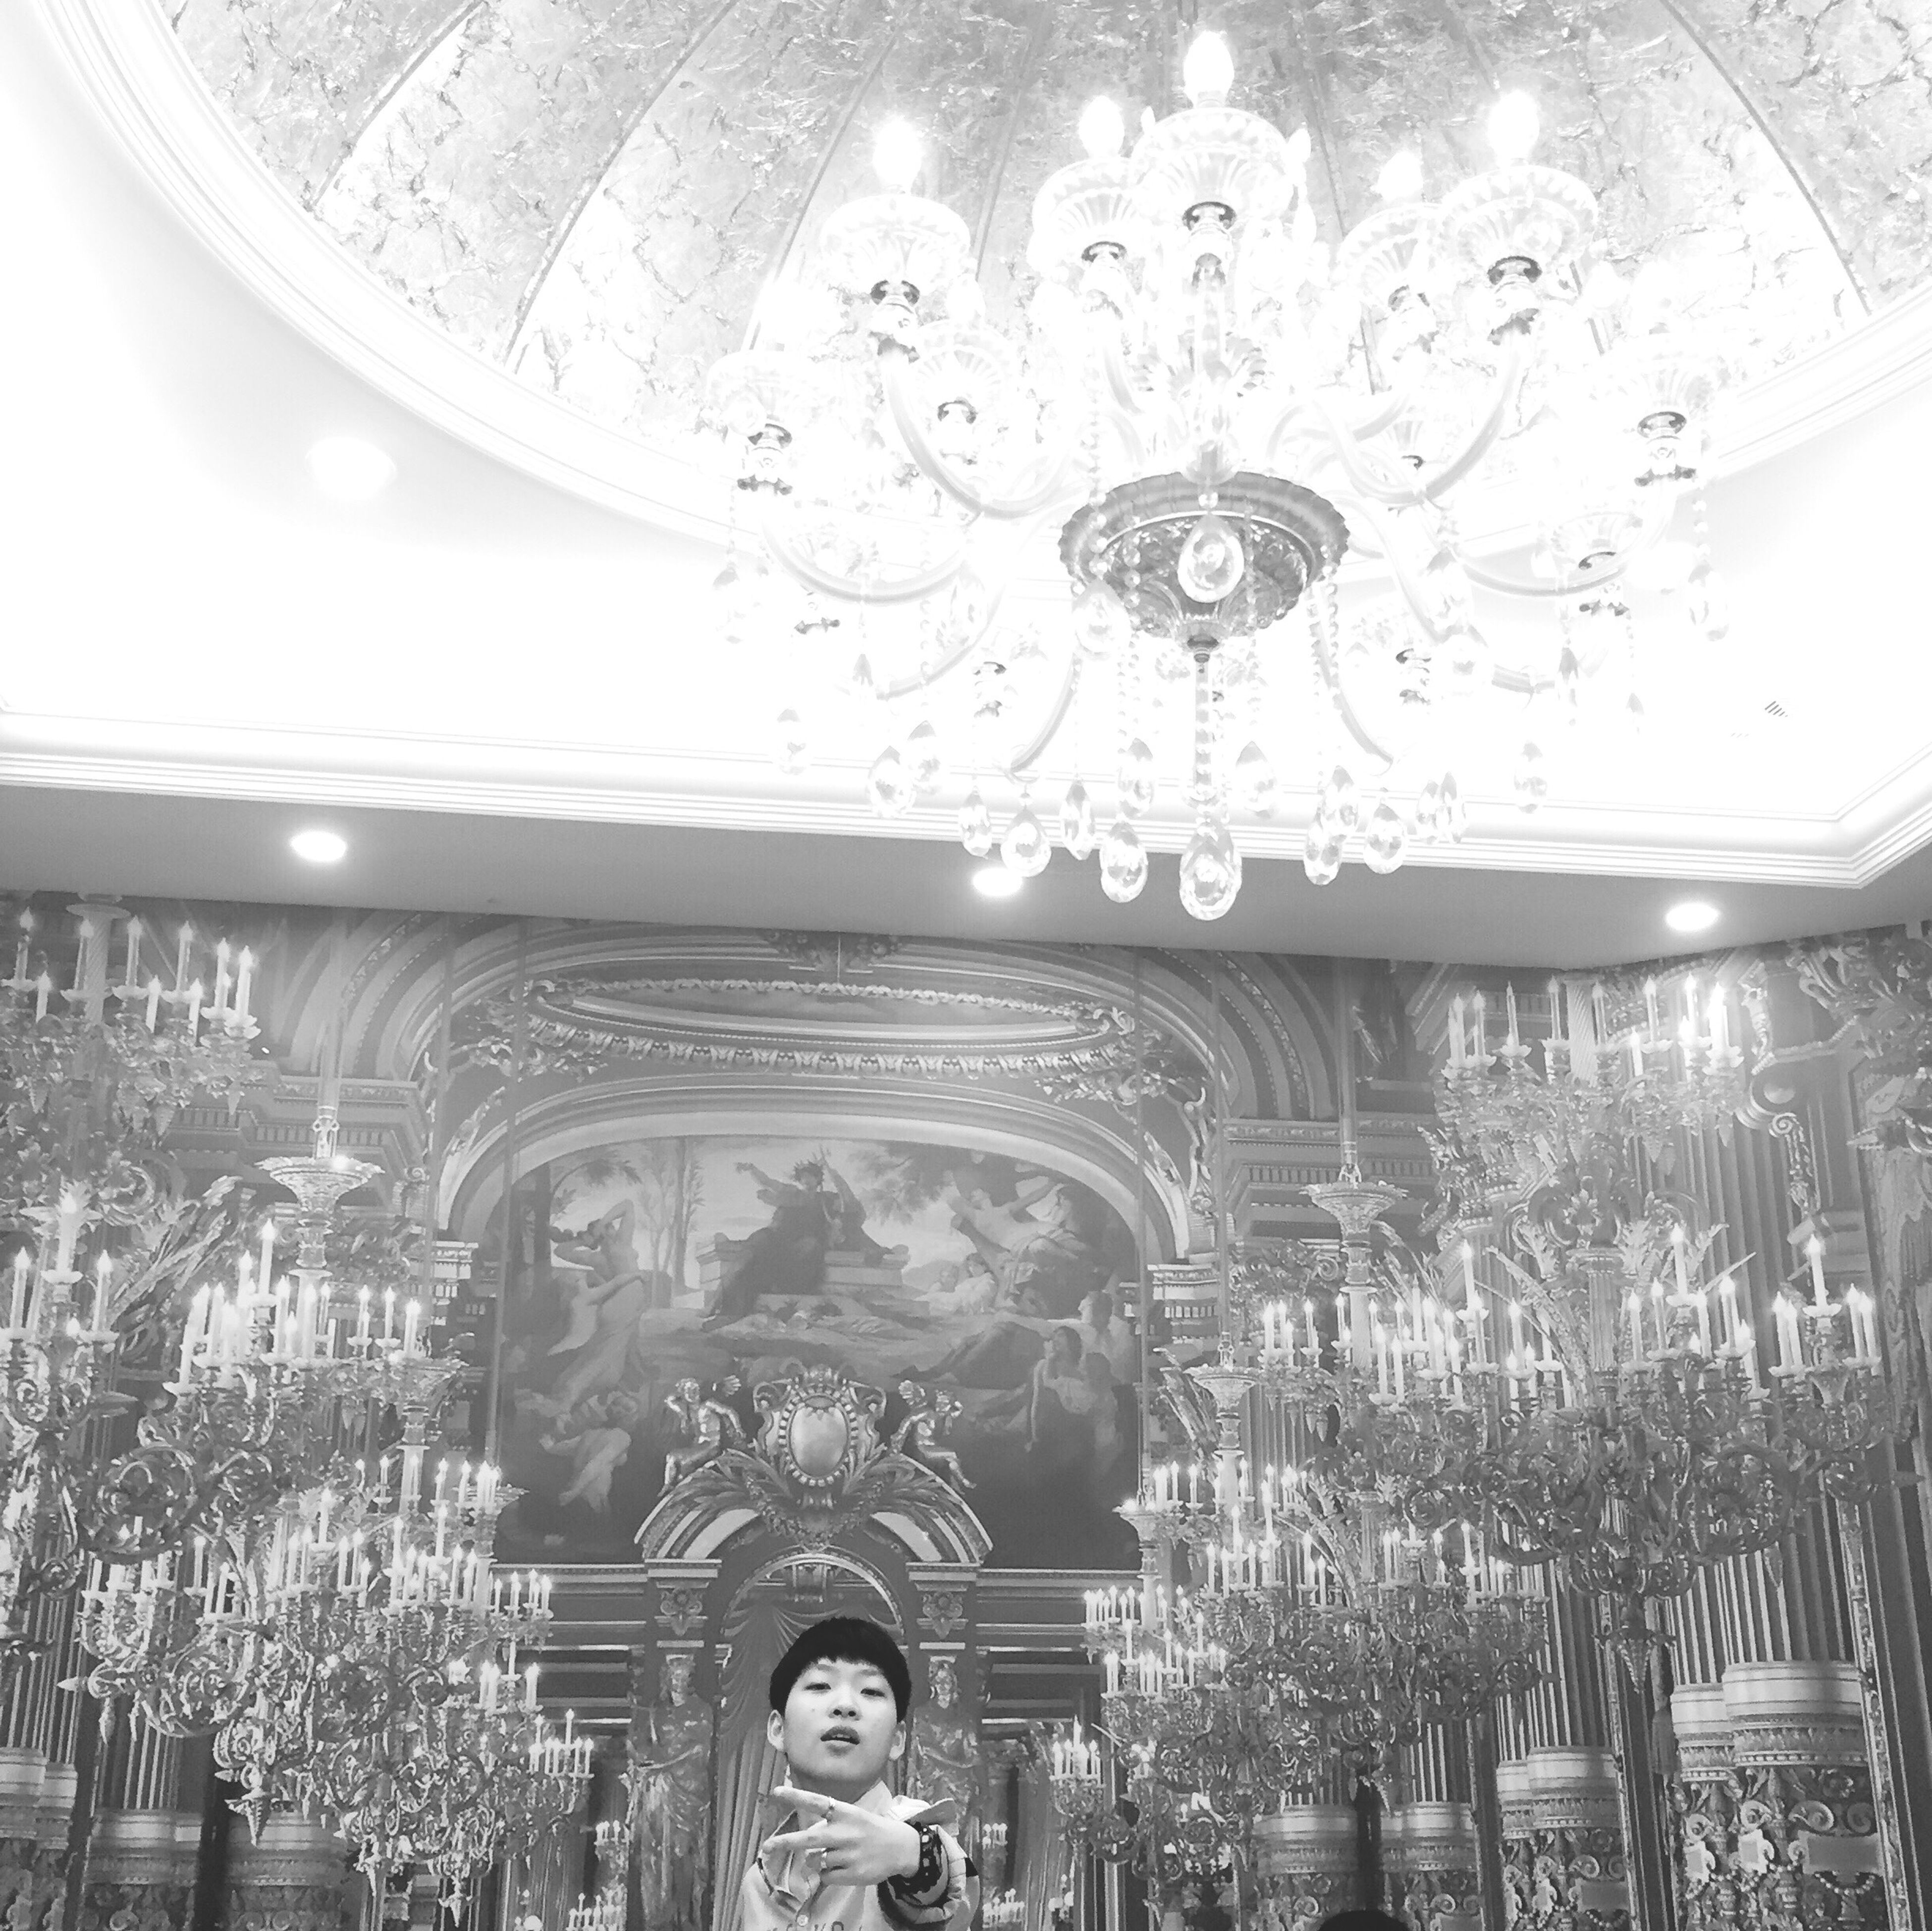 indoors, low angle view, ceiling, religion, place of worship, architecture, spirituality, decoration, lighting equipment, built structure, hanging, art and craft, ornate, chandelier, design, art, church, illuminated, creativity